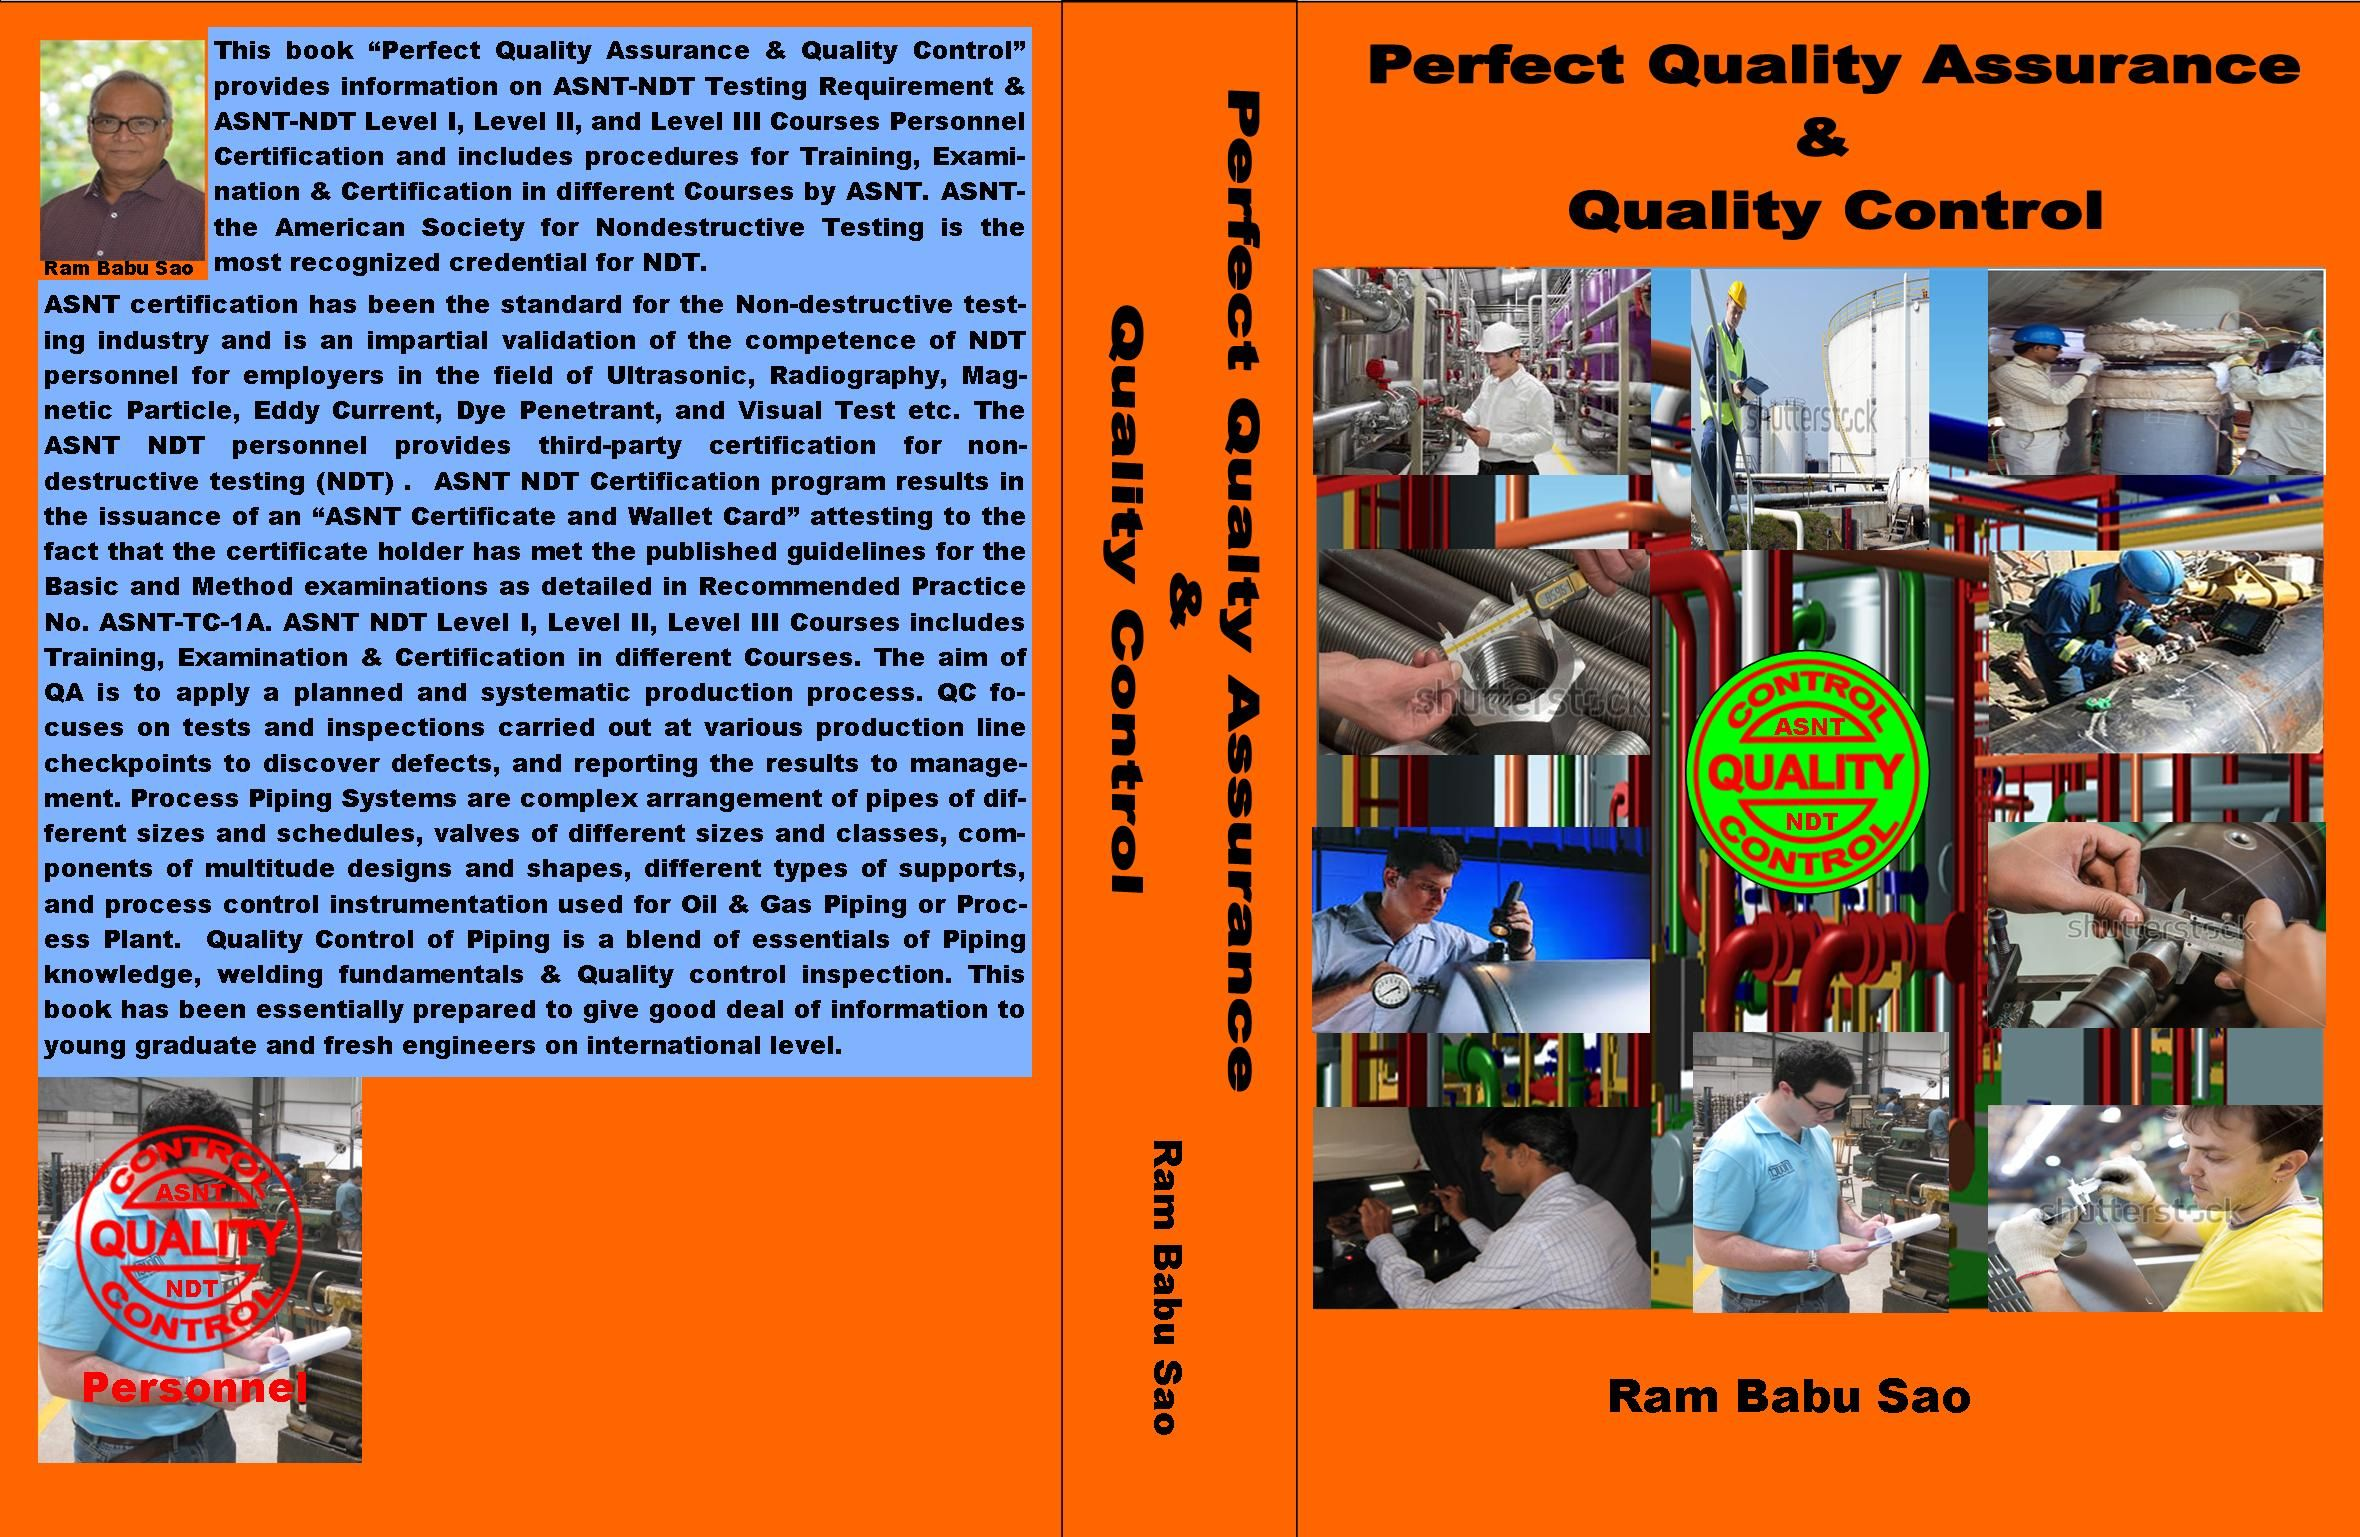 """This book provides """"ASNT-NDT"""" Testing Requirement; Personnel ASNT ..."""